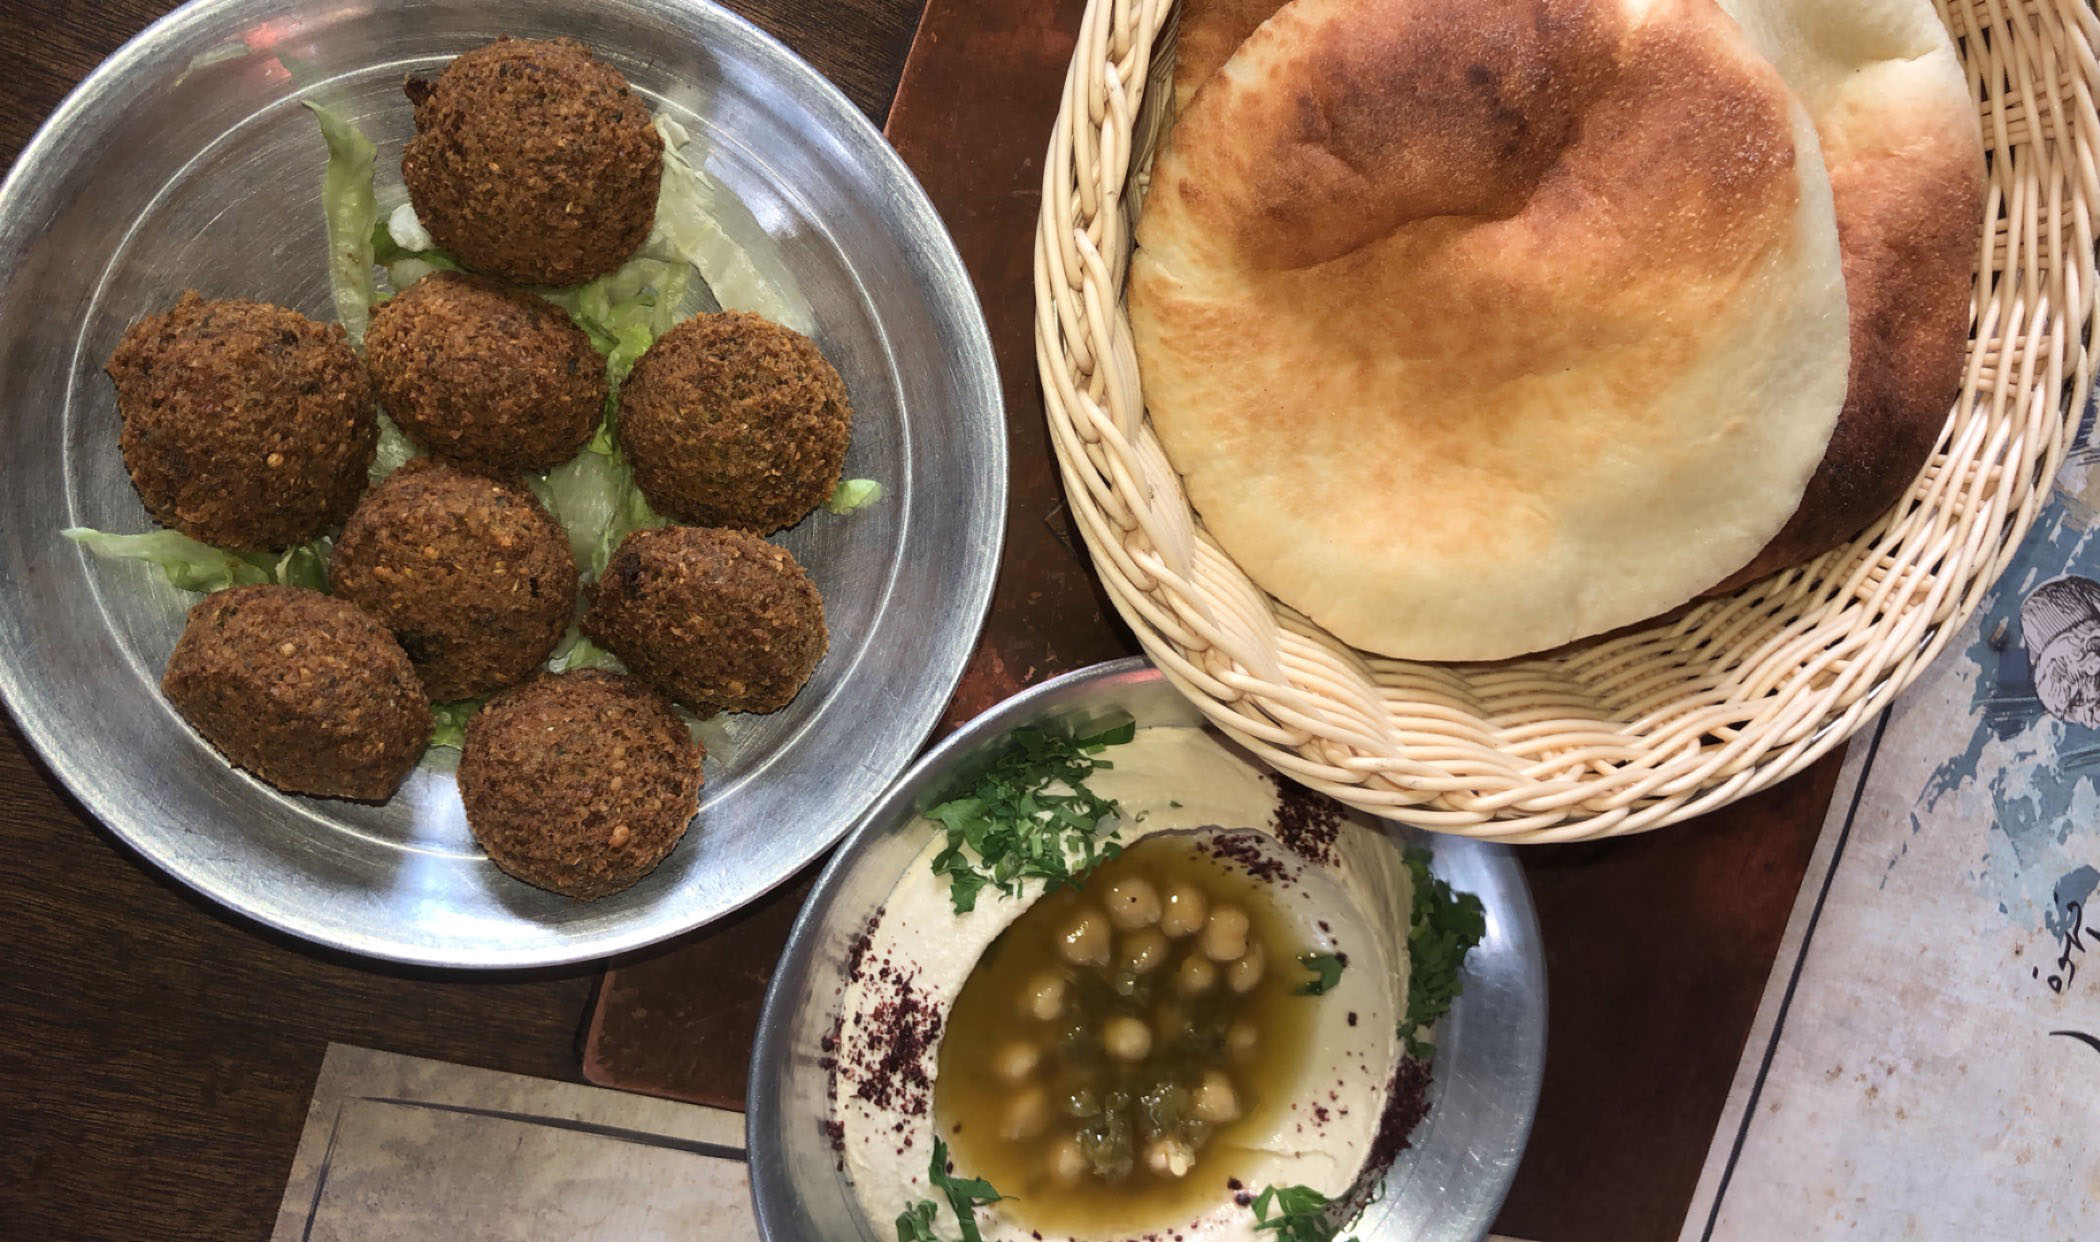 Falafel with hummus and pita has been a staple for us. We eat it basically everyday. The falafel here is the best we have had yet from a cafe in Abdoun Circle. Falafel is now my new favorite food! I would had never tried it before coming here or thought I would try it while in Jordan, but now I can't get enough. Photo credit: Arguin, 2019